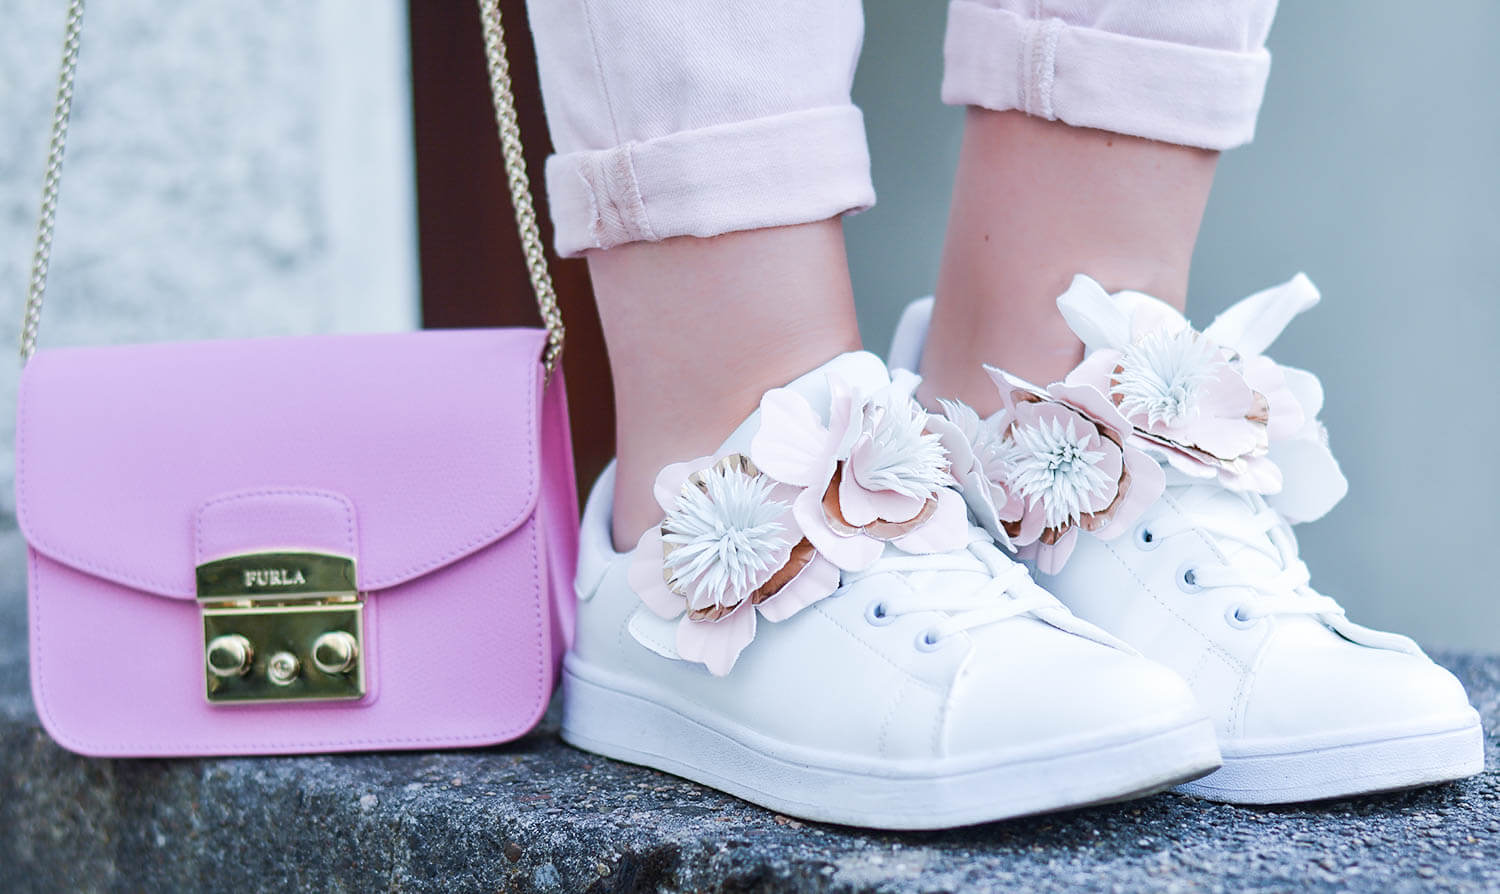 Outfit-Pale-Pink-and-White-with-Flower-Sneakers-during-our-Mini-Moon-kationette-fashionblogger-nrw-furla-metropolis